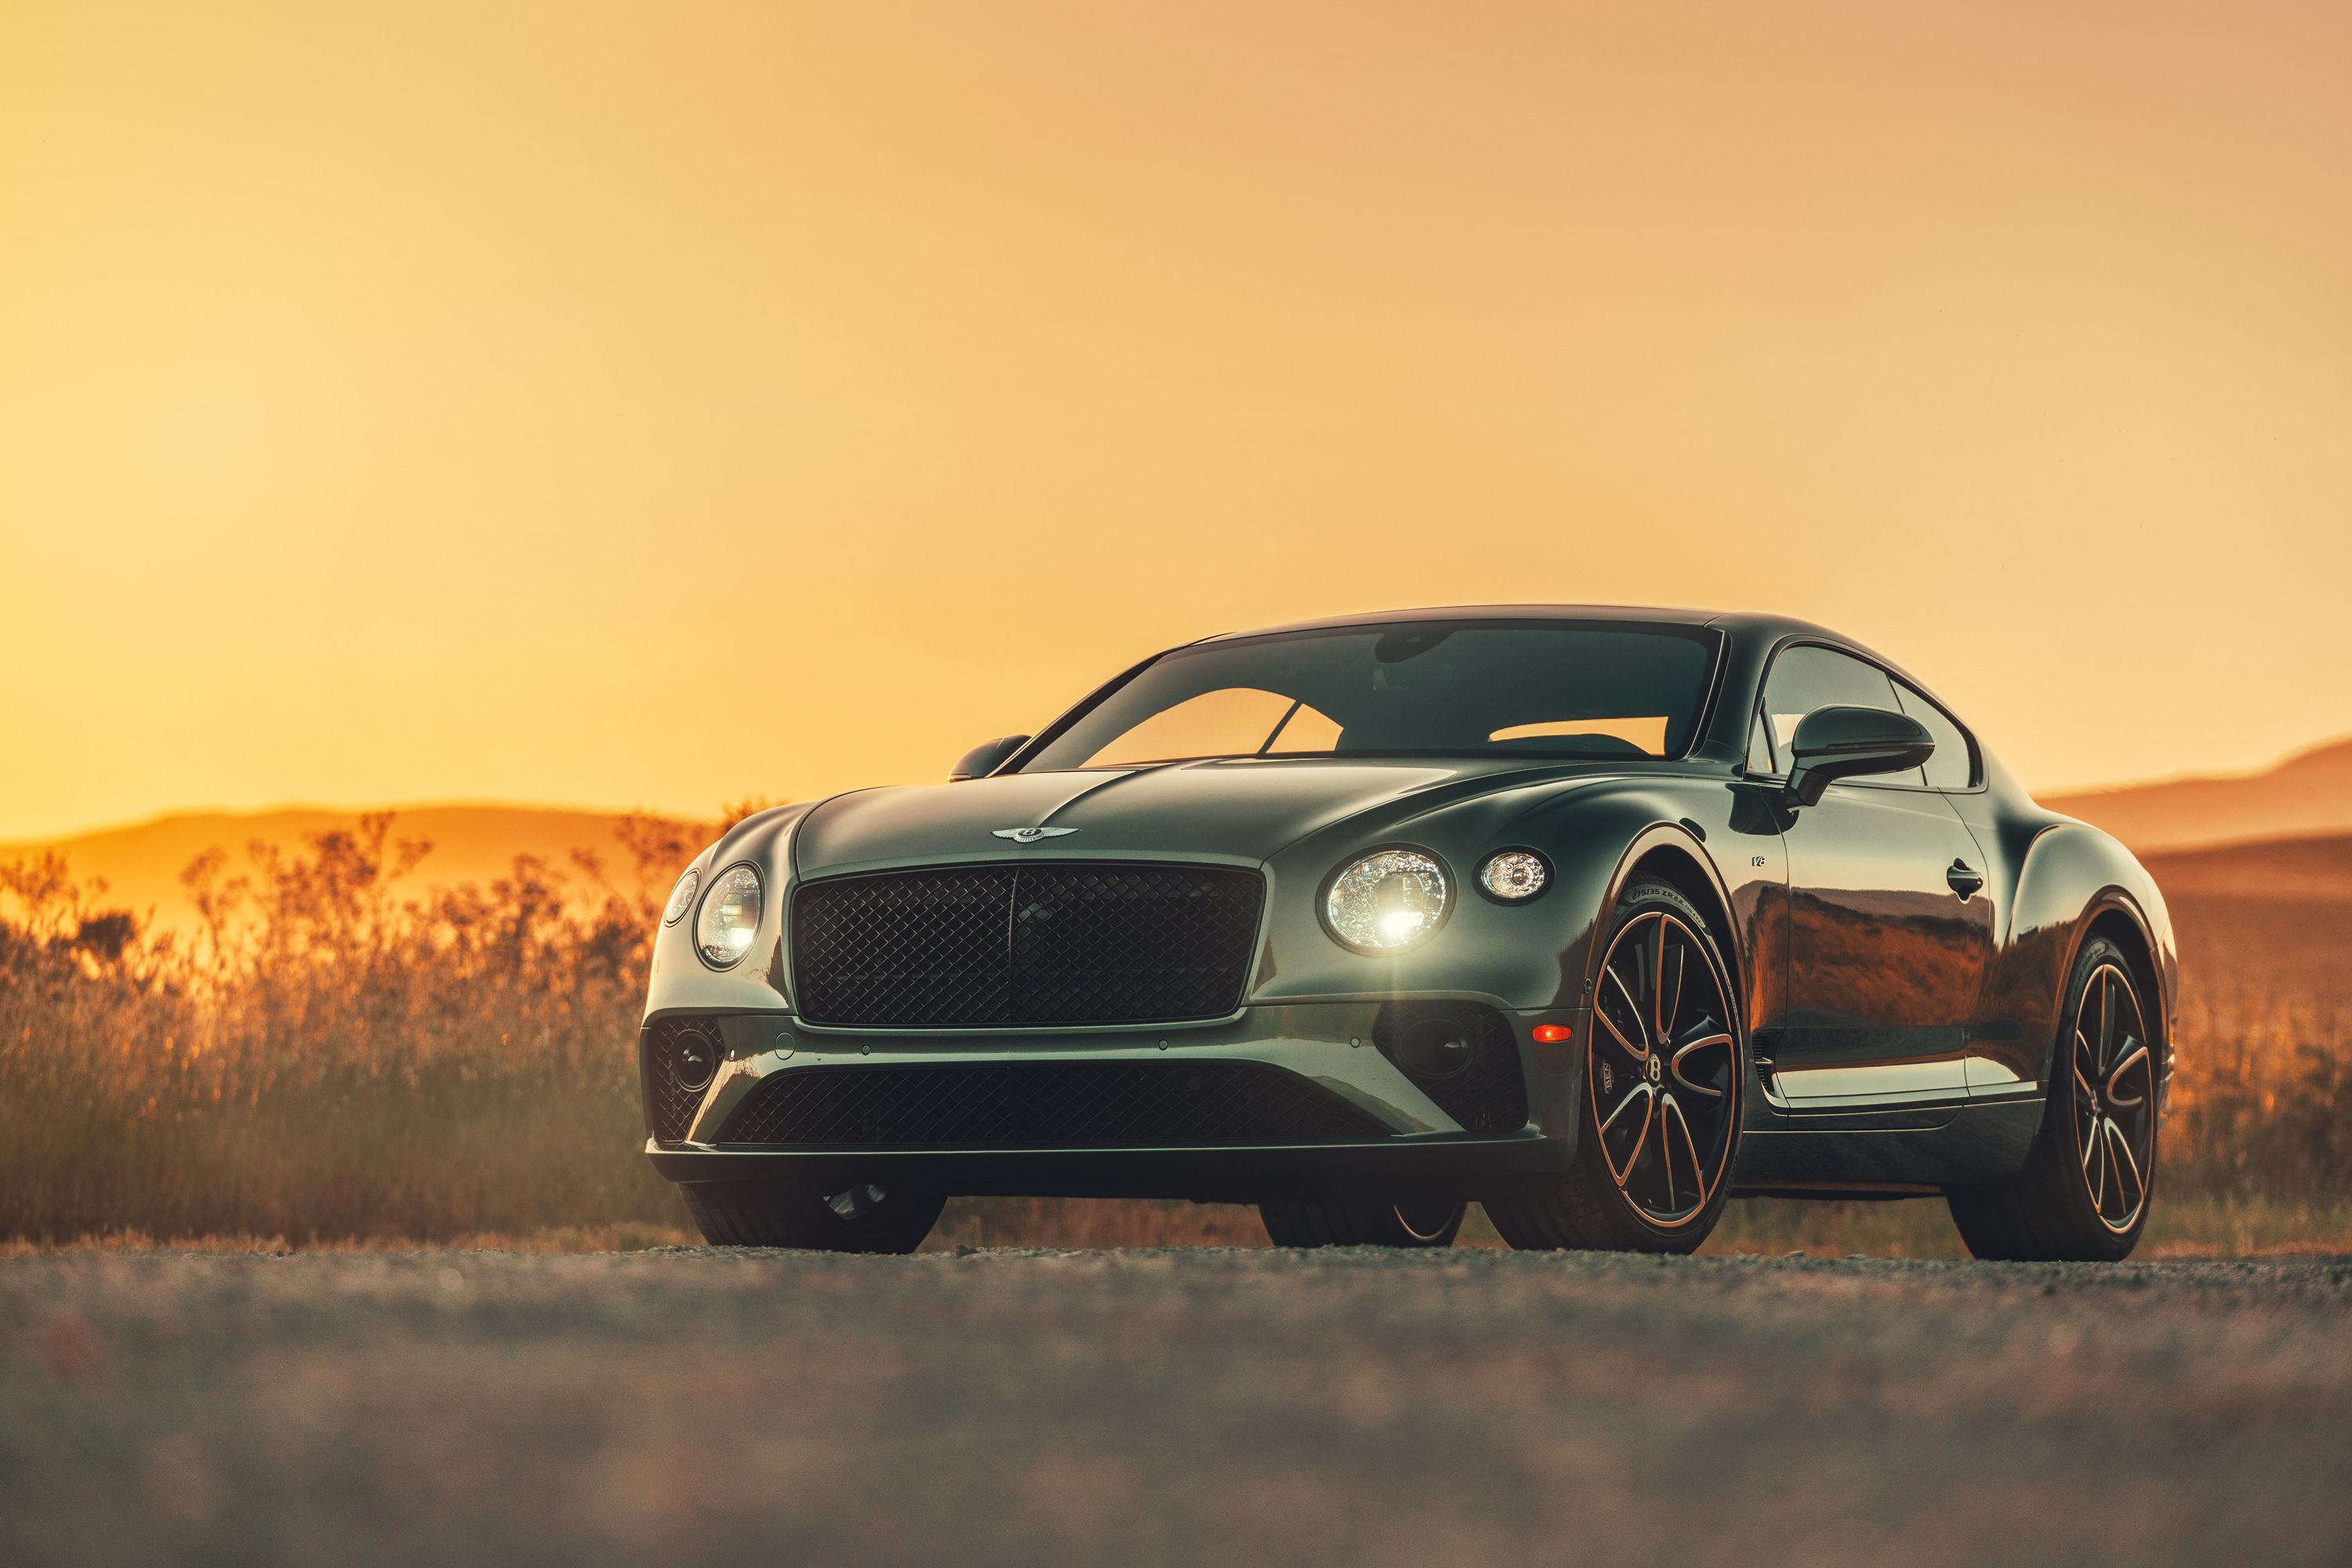 The 2020 Bentley Continental GT V8 Is a Different Sort of Driver's Car